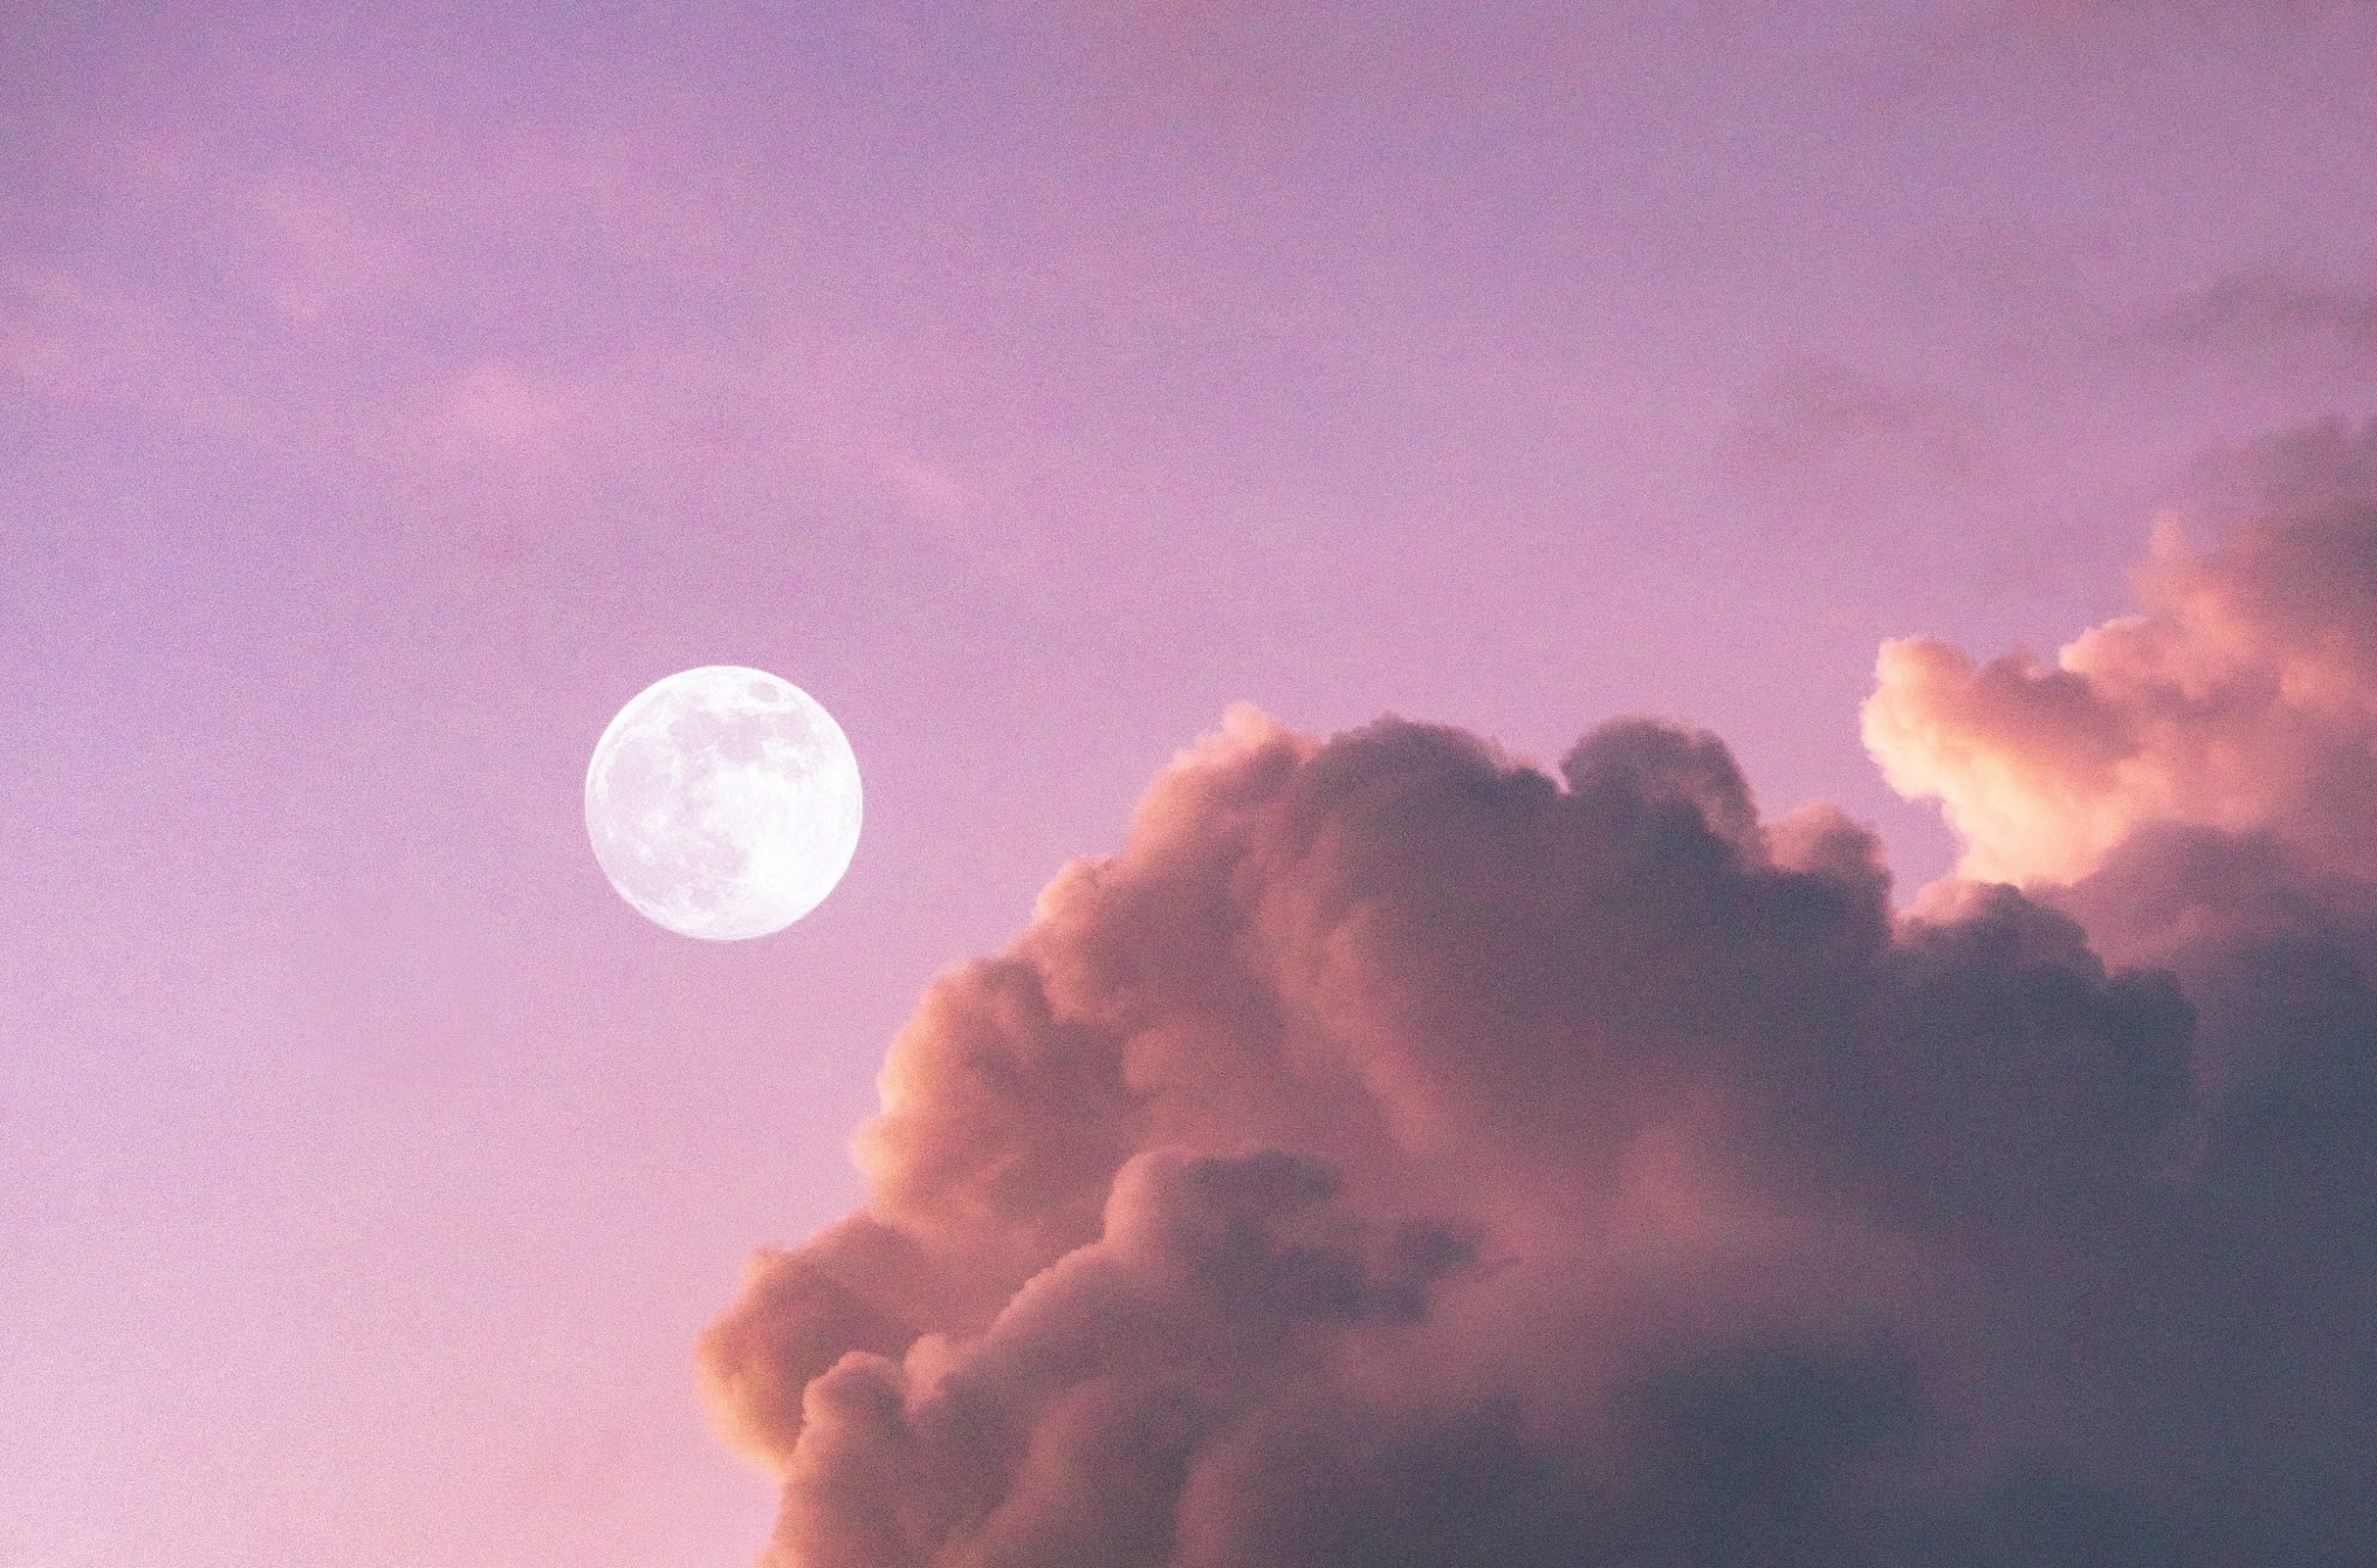 When is the Next Full Moon? And What to Do According to Astrology